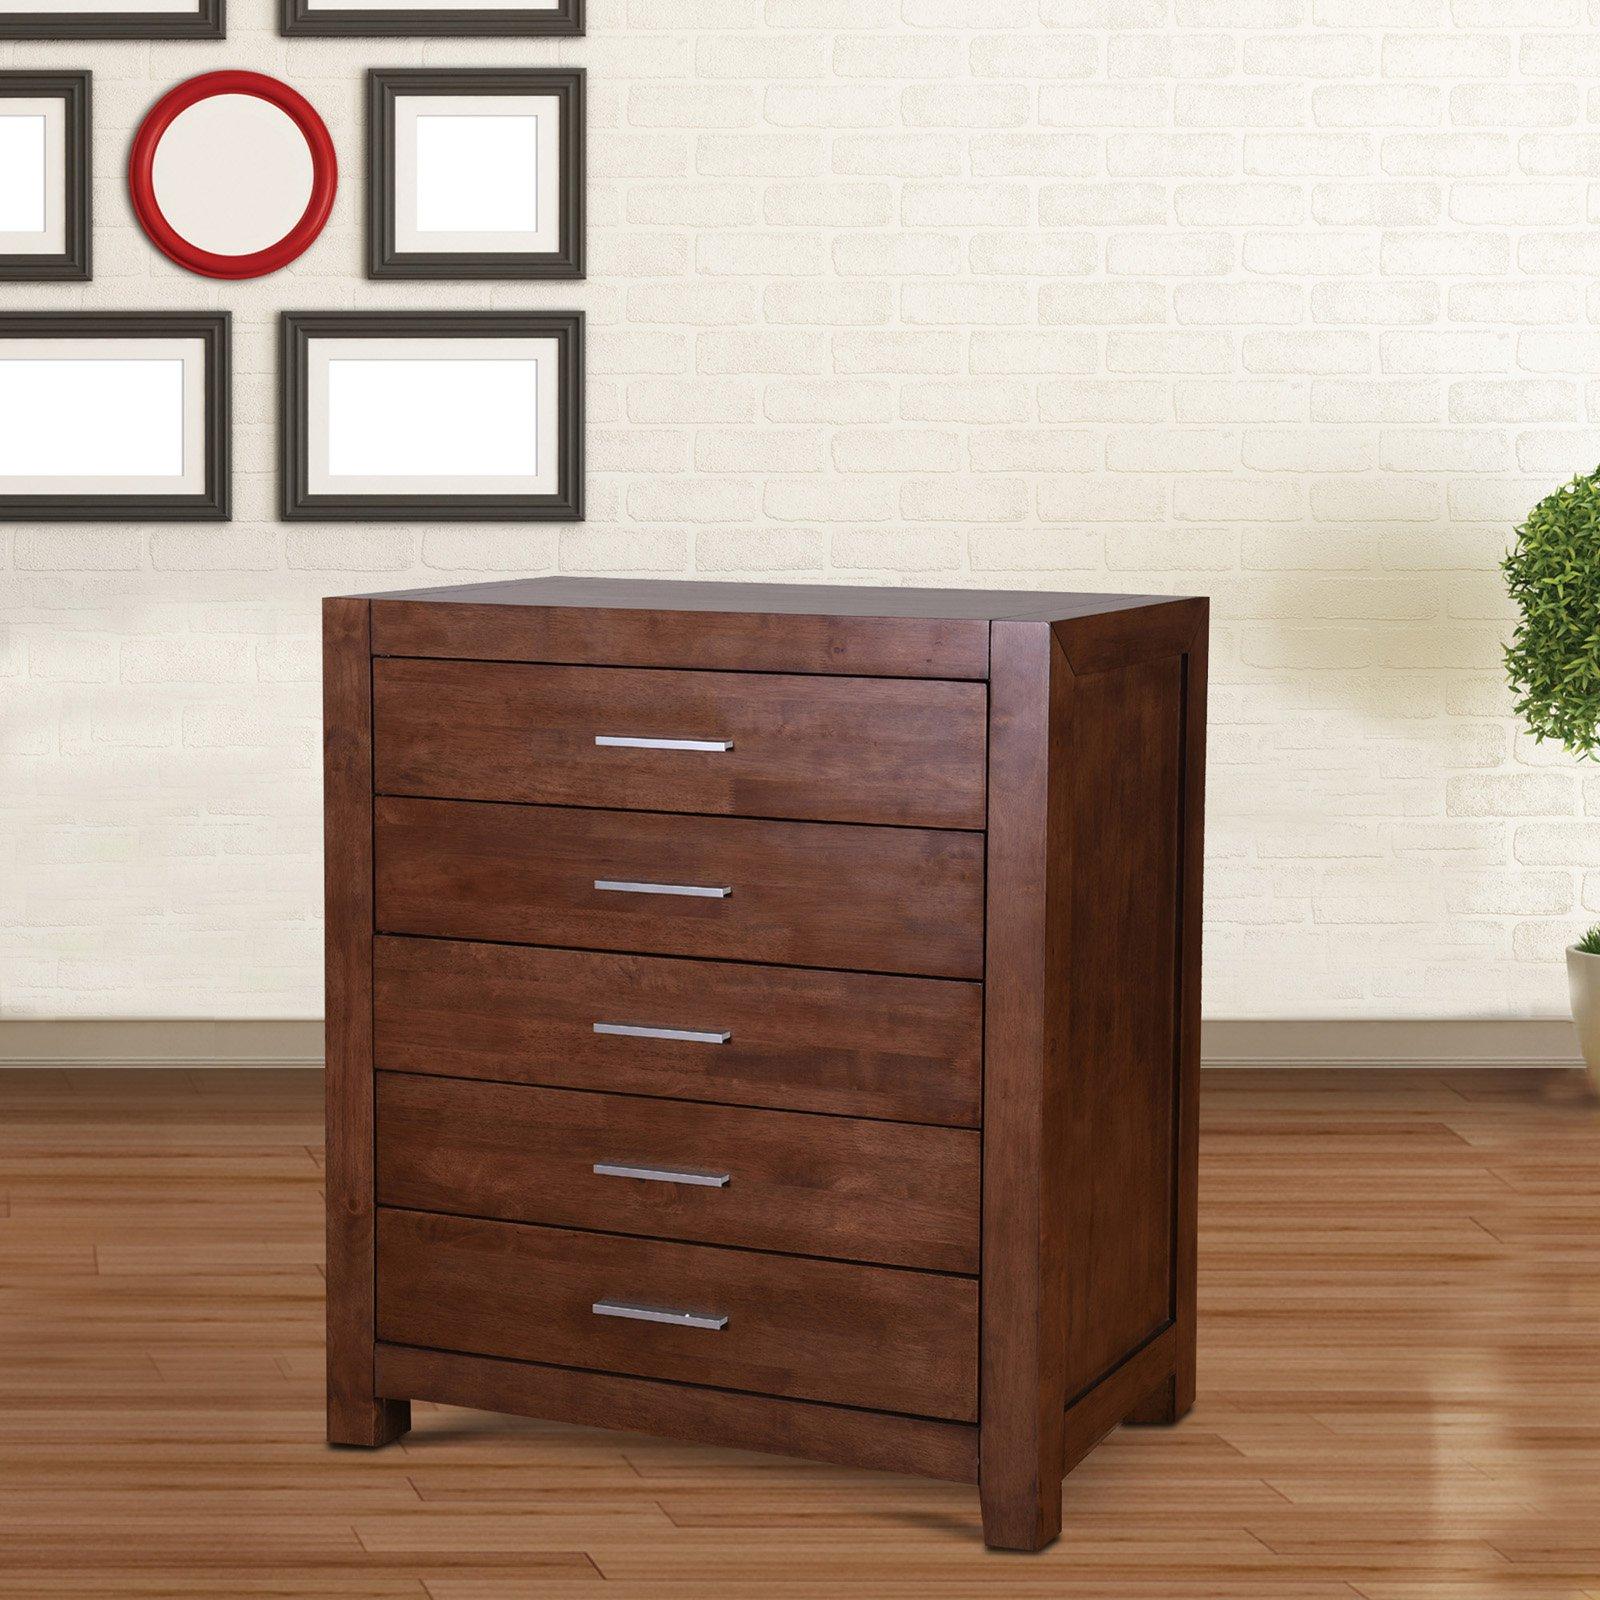 Midtown Concept Omaha 5-Drawer Chest